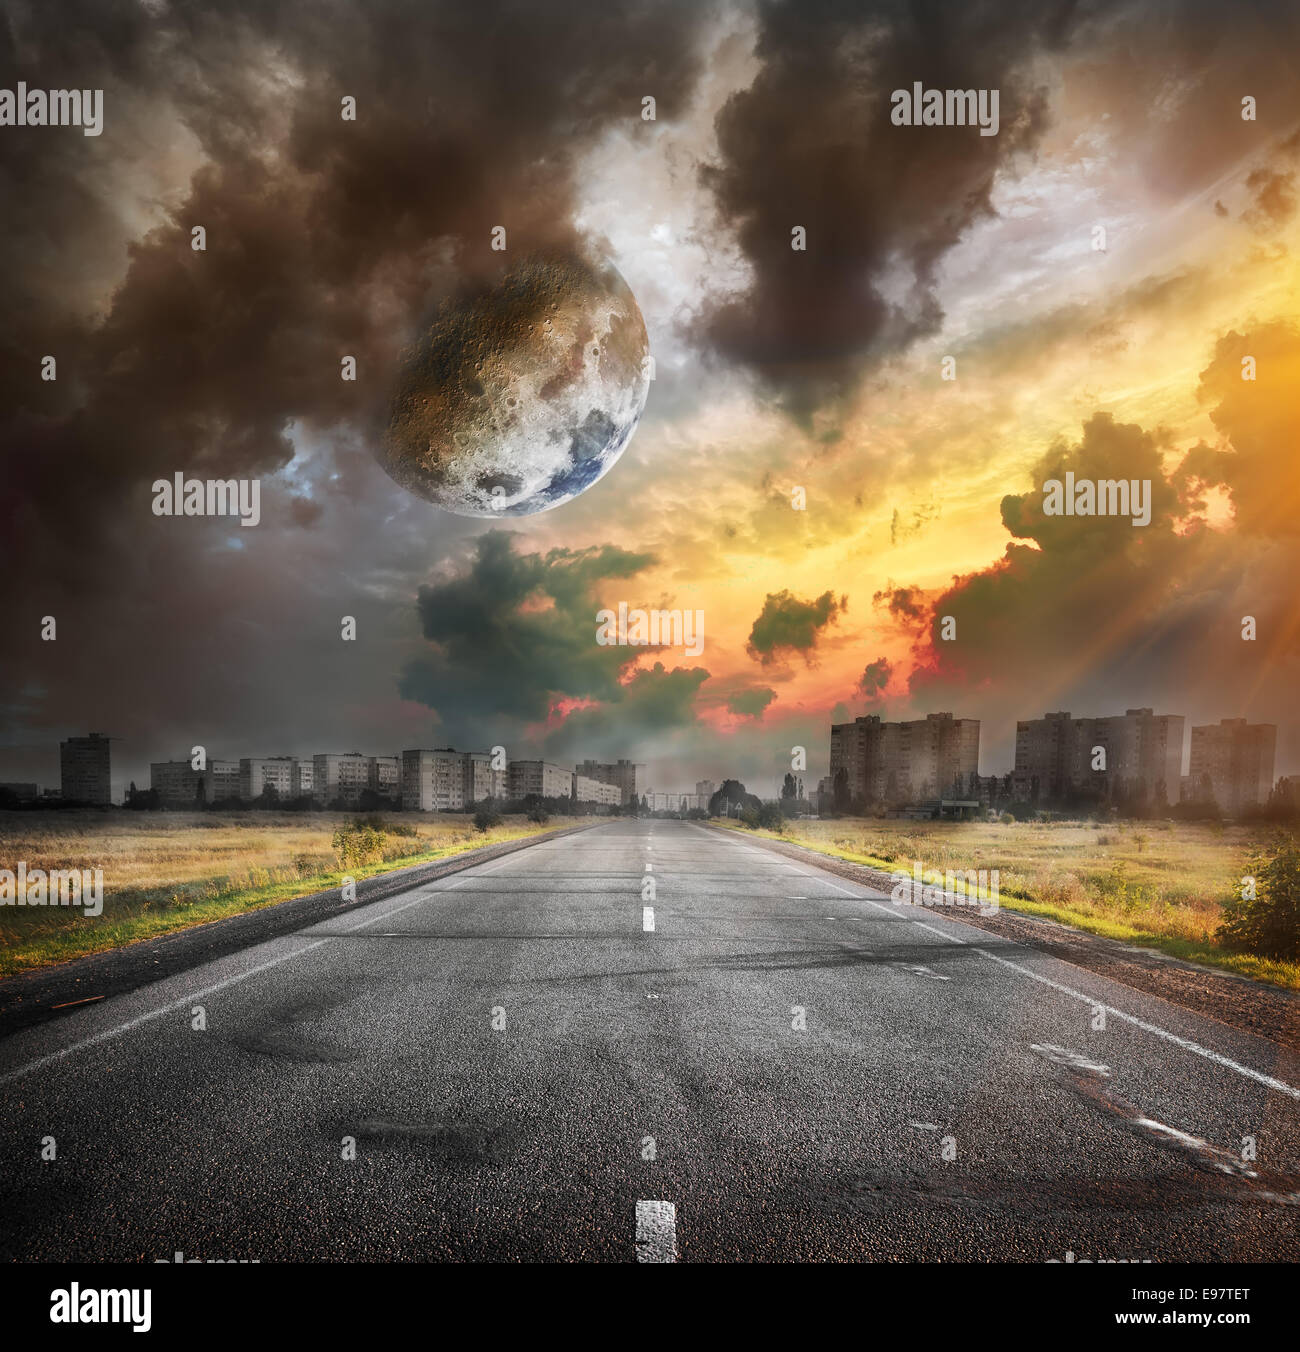 Road and the moon. Elements of this image furnished by NASA - Stock Image